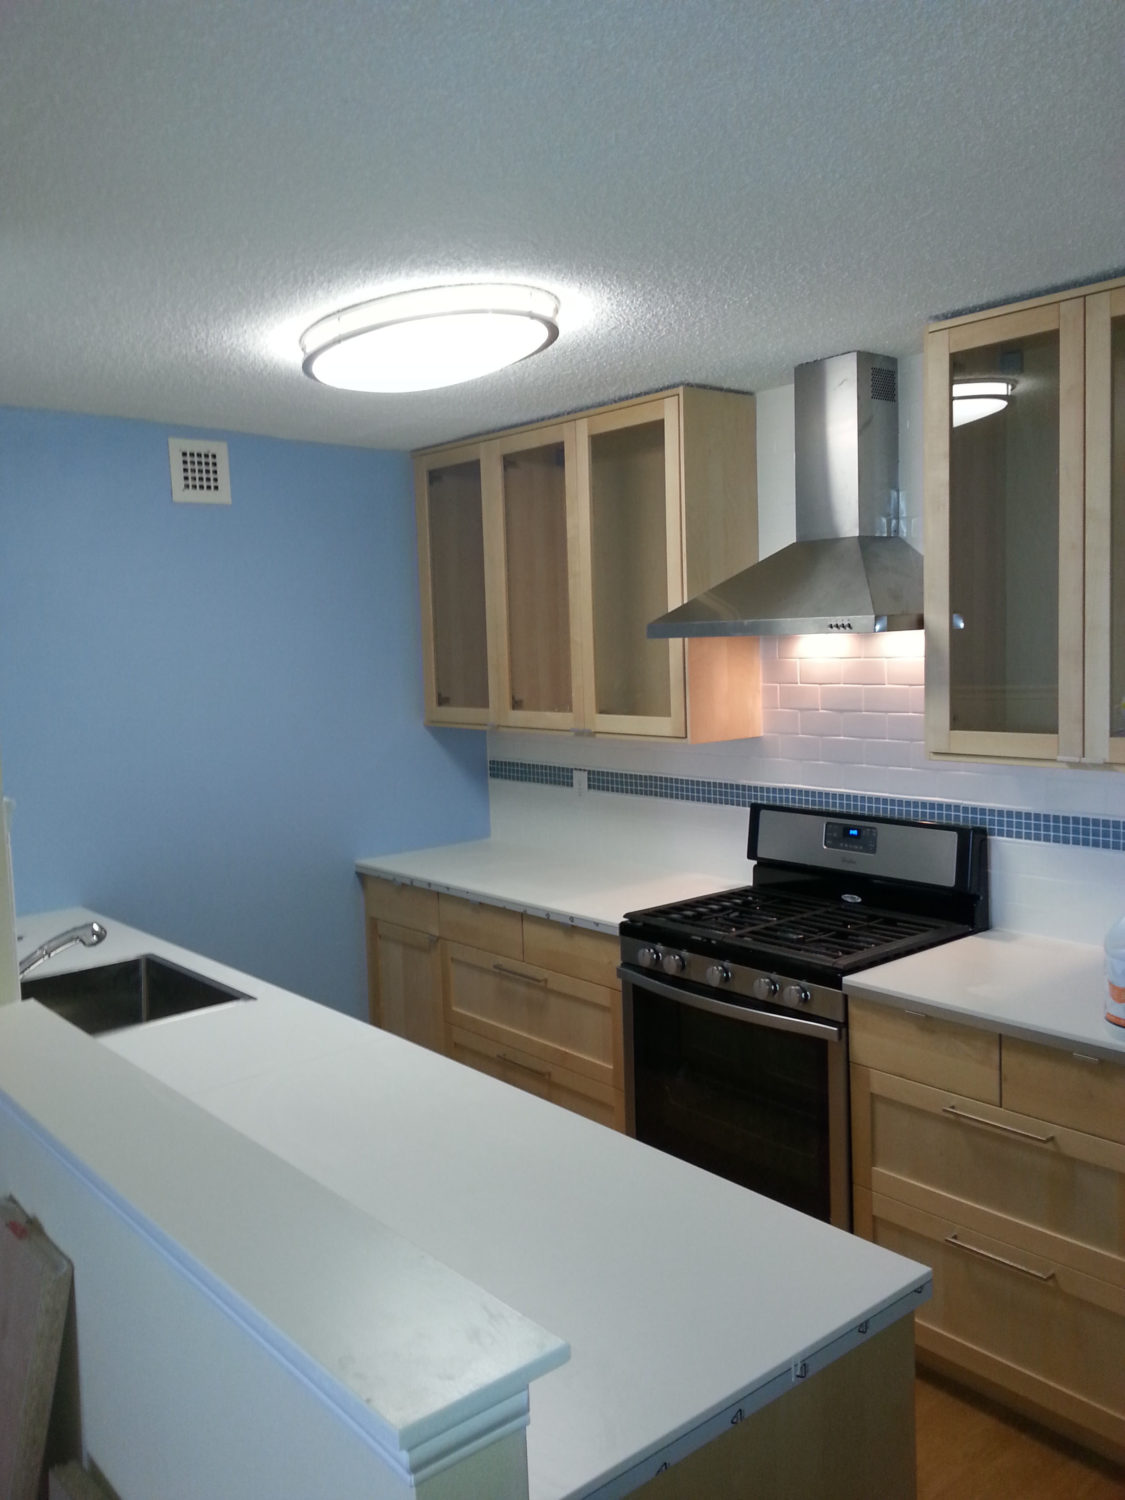 Updating A Turtle Creek Condo Richardson Kitchen And